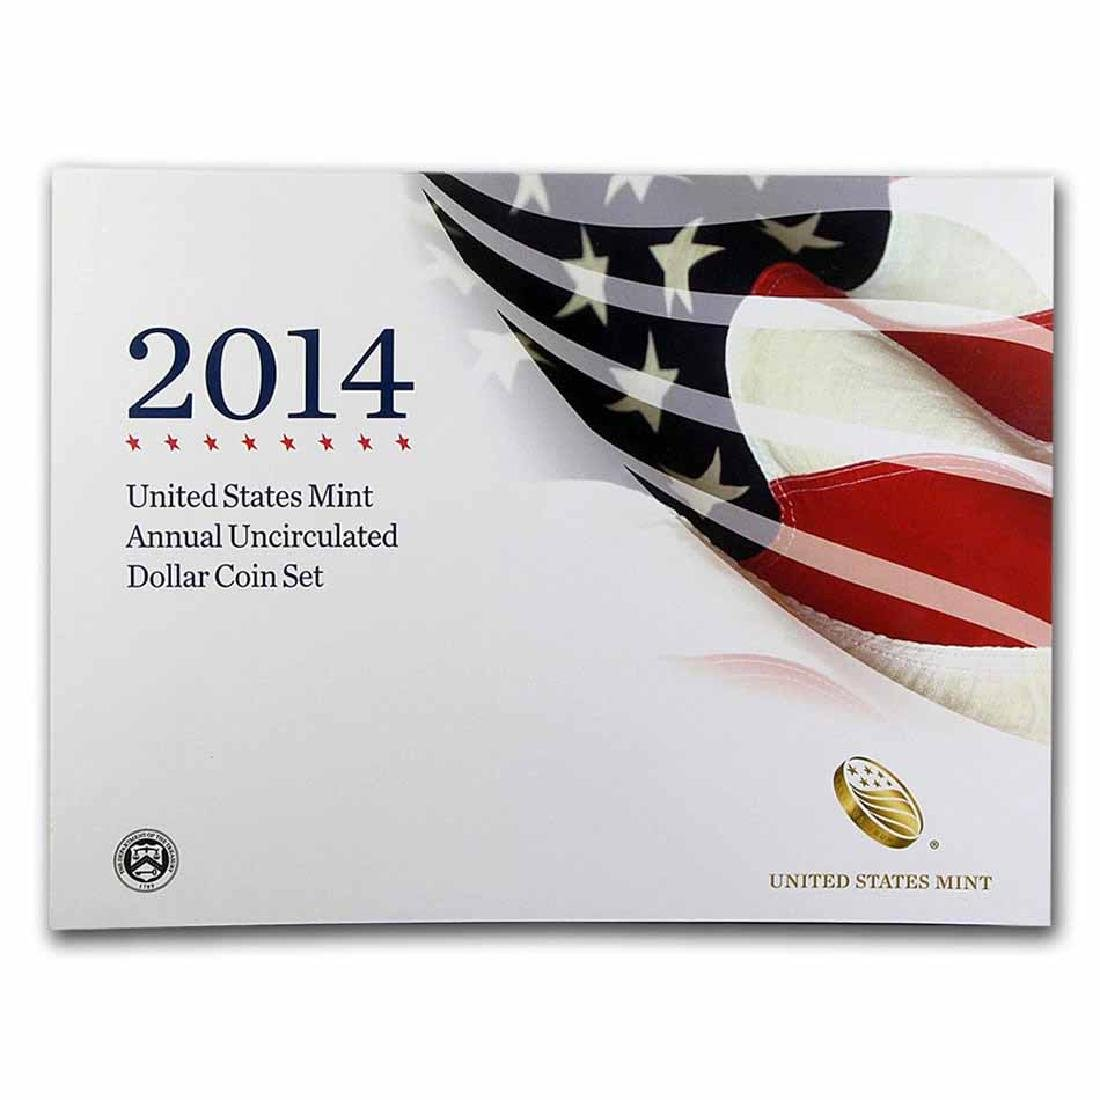 2014 U.S. Mint Annual Uncirculated Dollar Coin Set